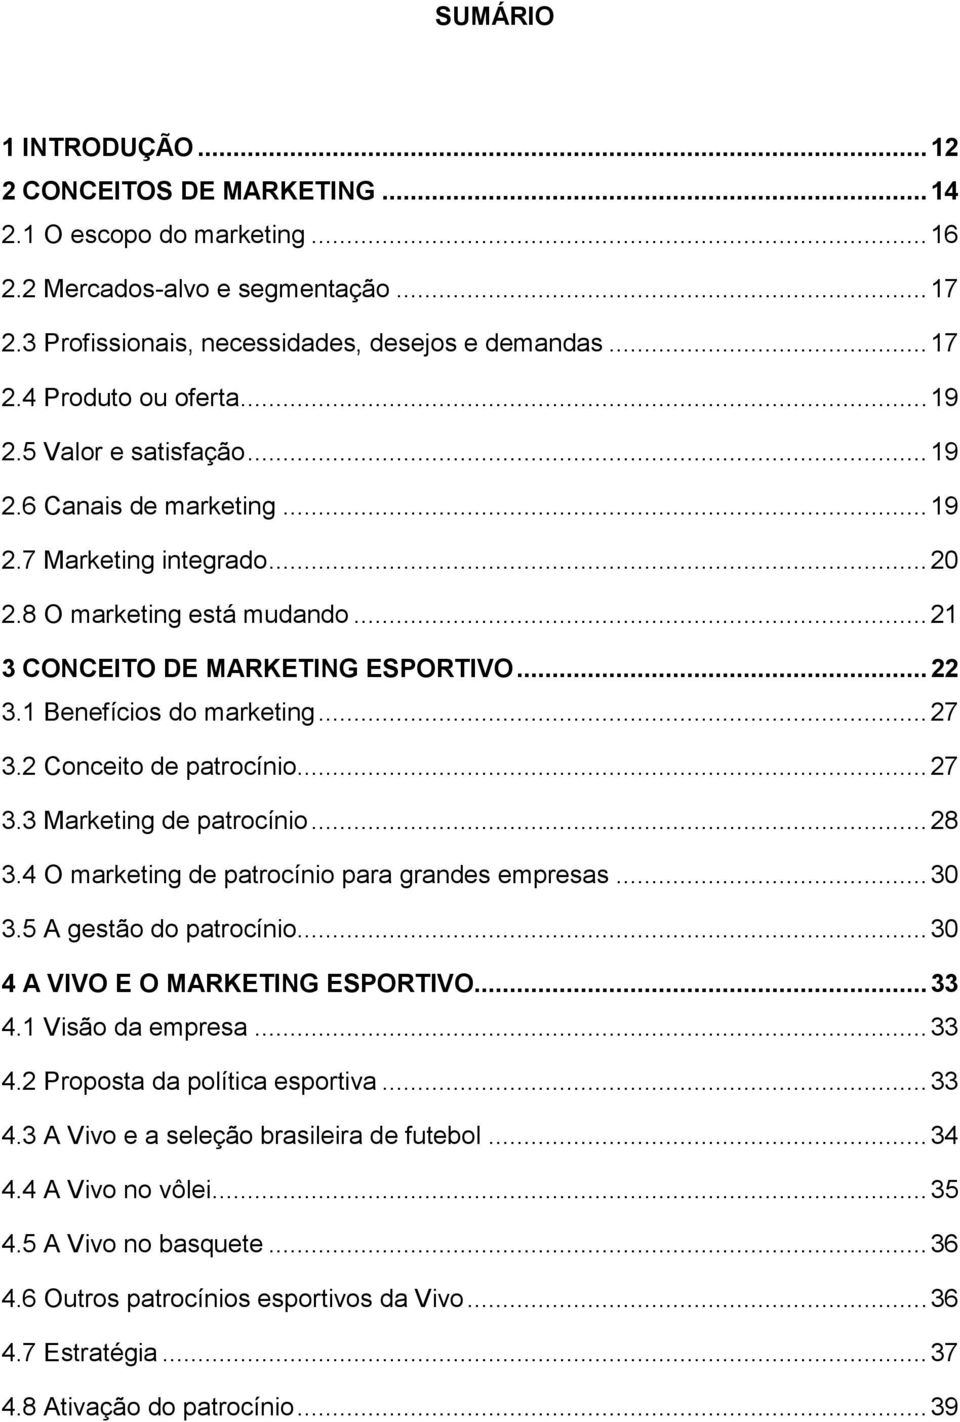 .. 27 3.2 Conceito de patrocínio... 27 3.3 Marketing de patrocínio... 28 3.4 O marketing de patrocínio para grandes empresas... 30 3.5 A gestão do patrocínio... 30 4 A VIVO E O MARKETING ESPORTIVO.